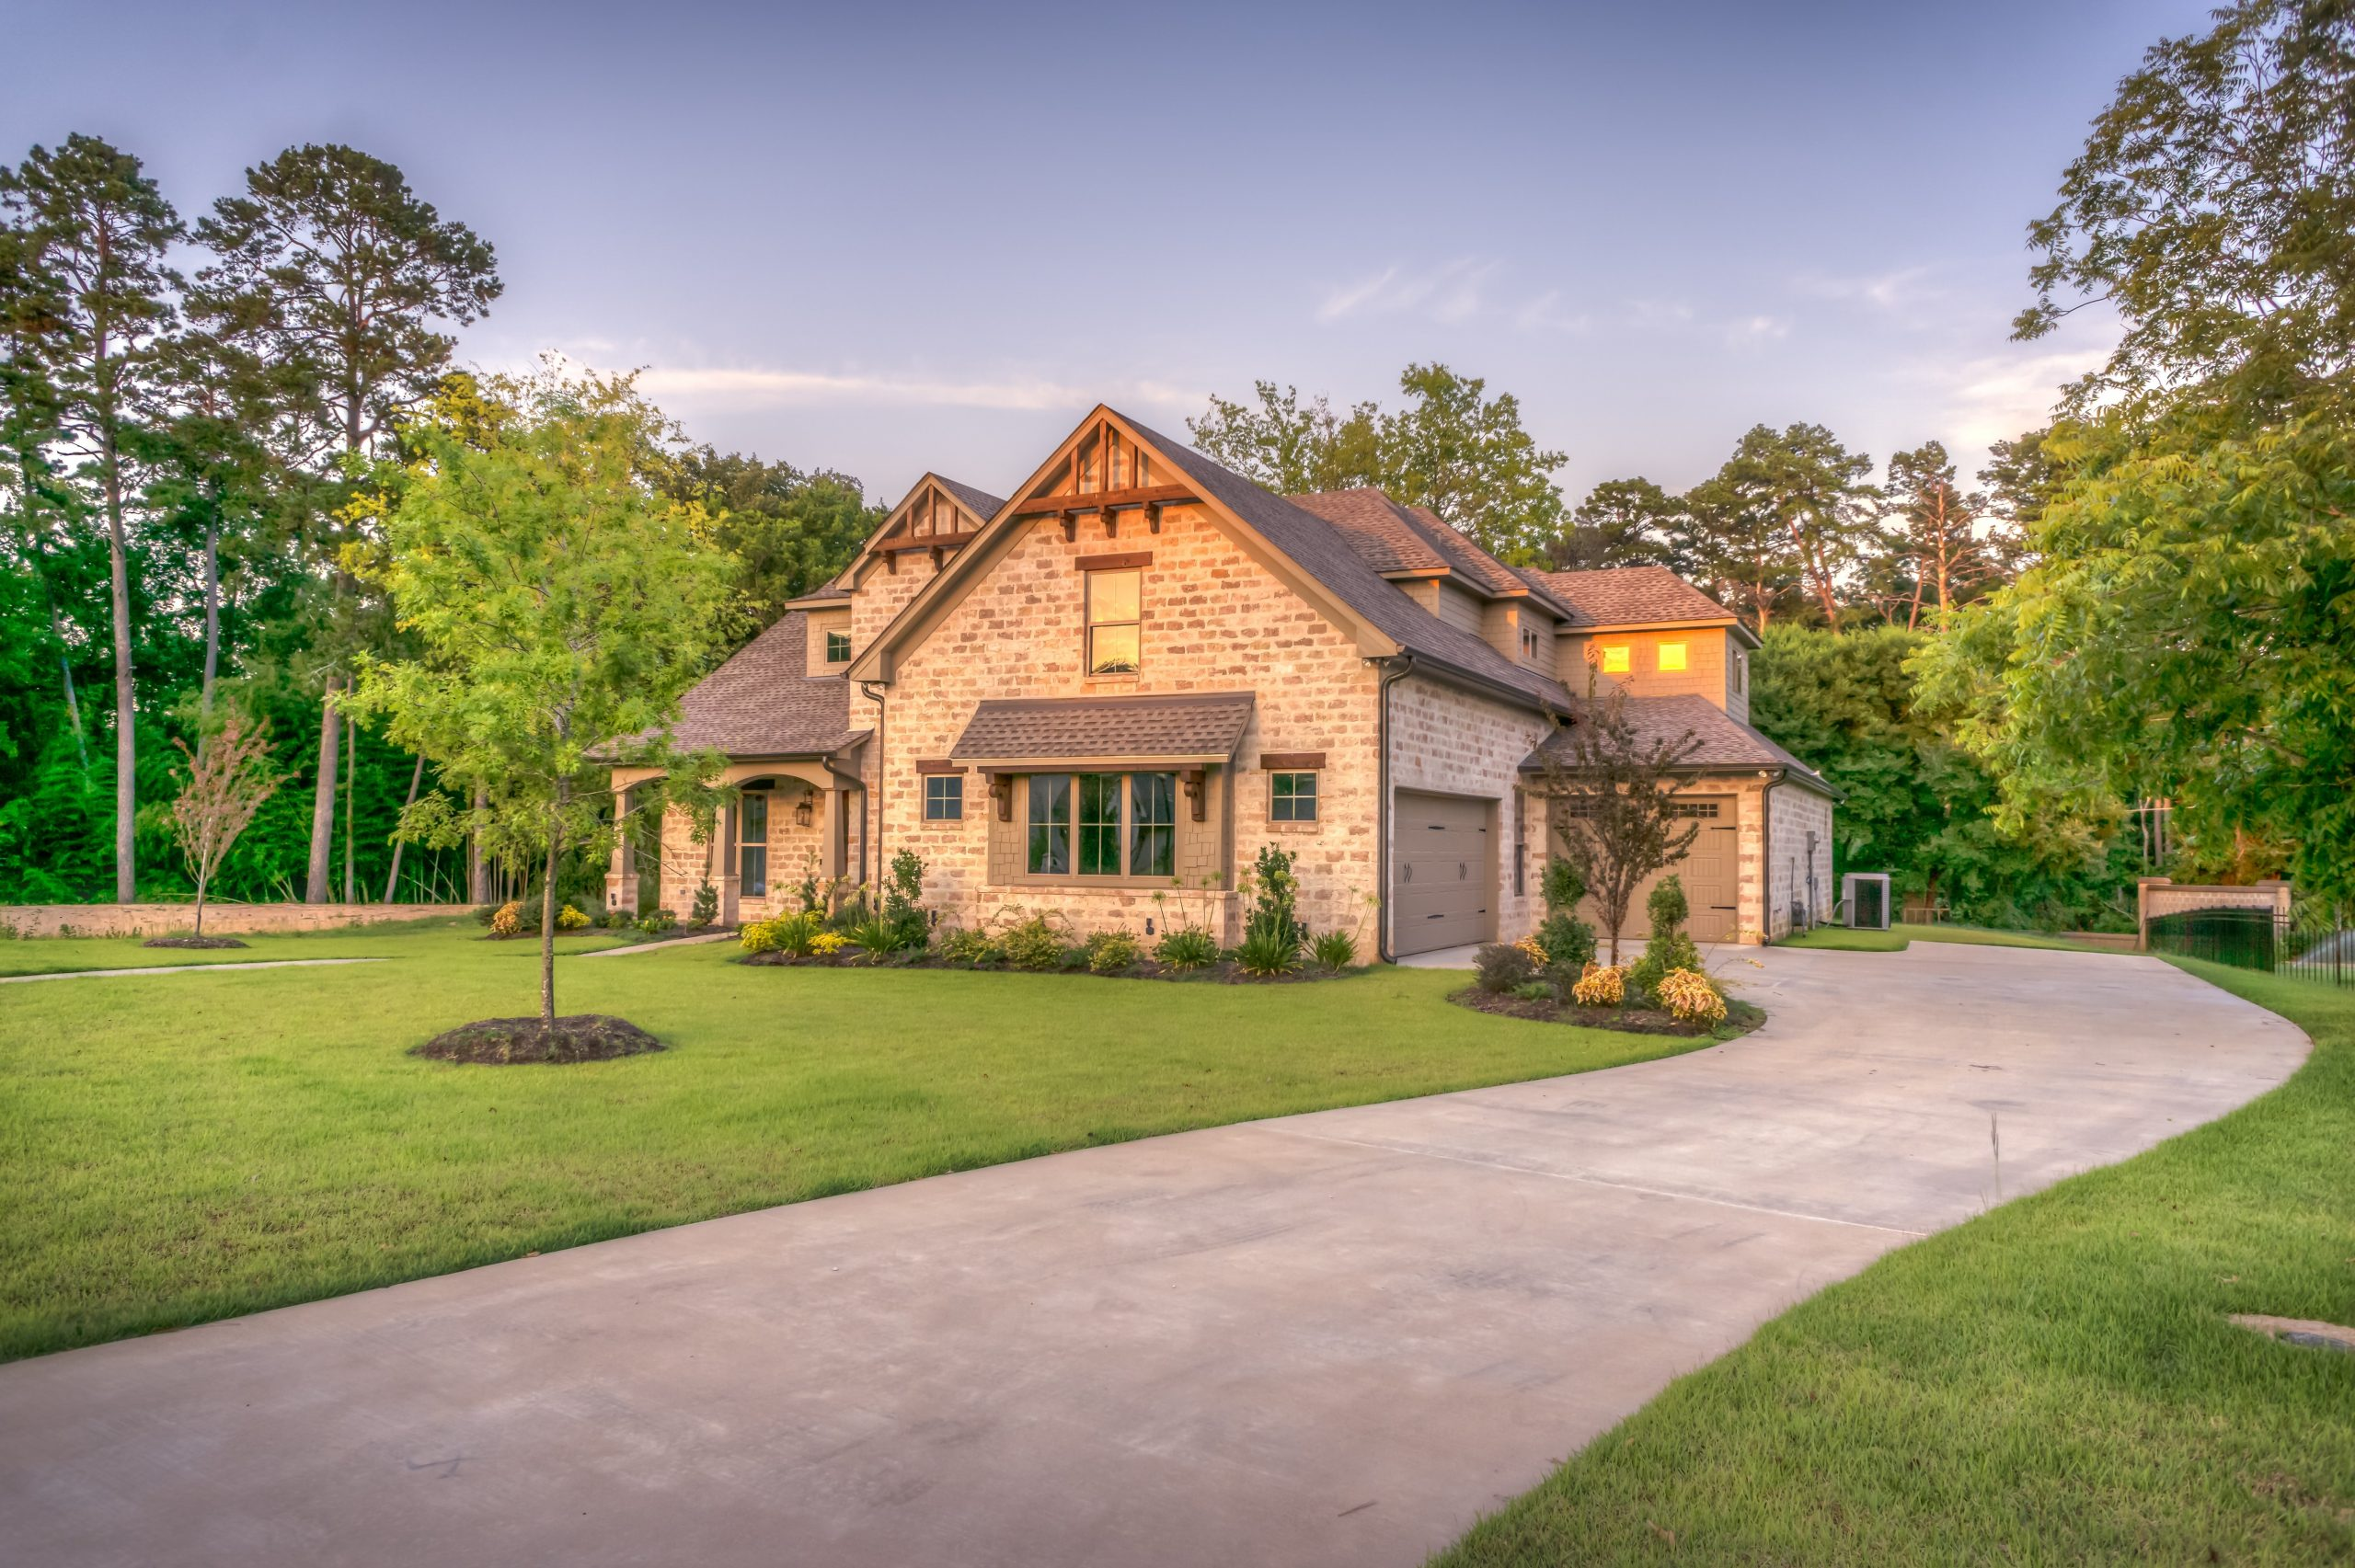 large brown house at the end of a long drive; Try These Landscaping Ideas to Maximize Your Home's Kerb Appeal